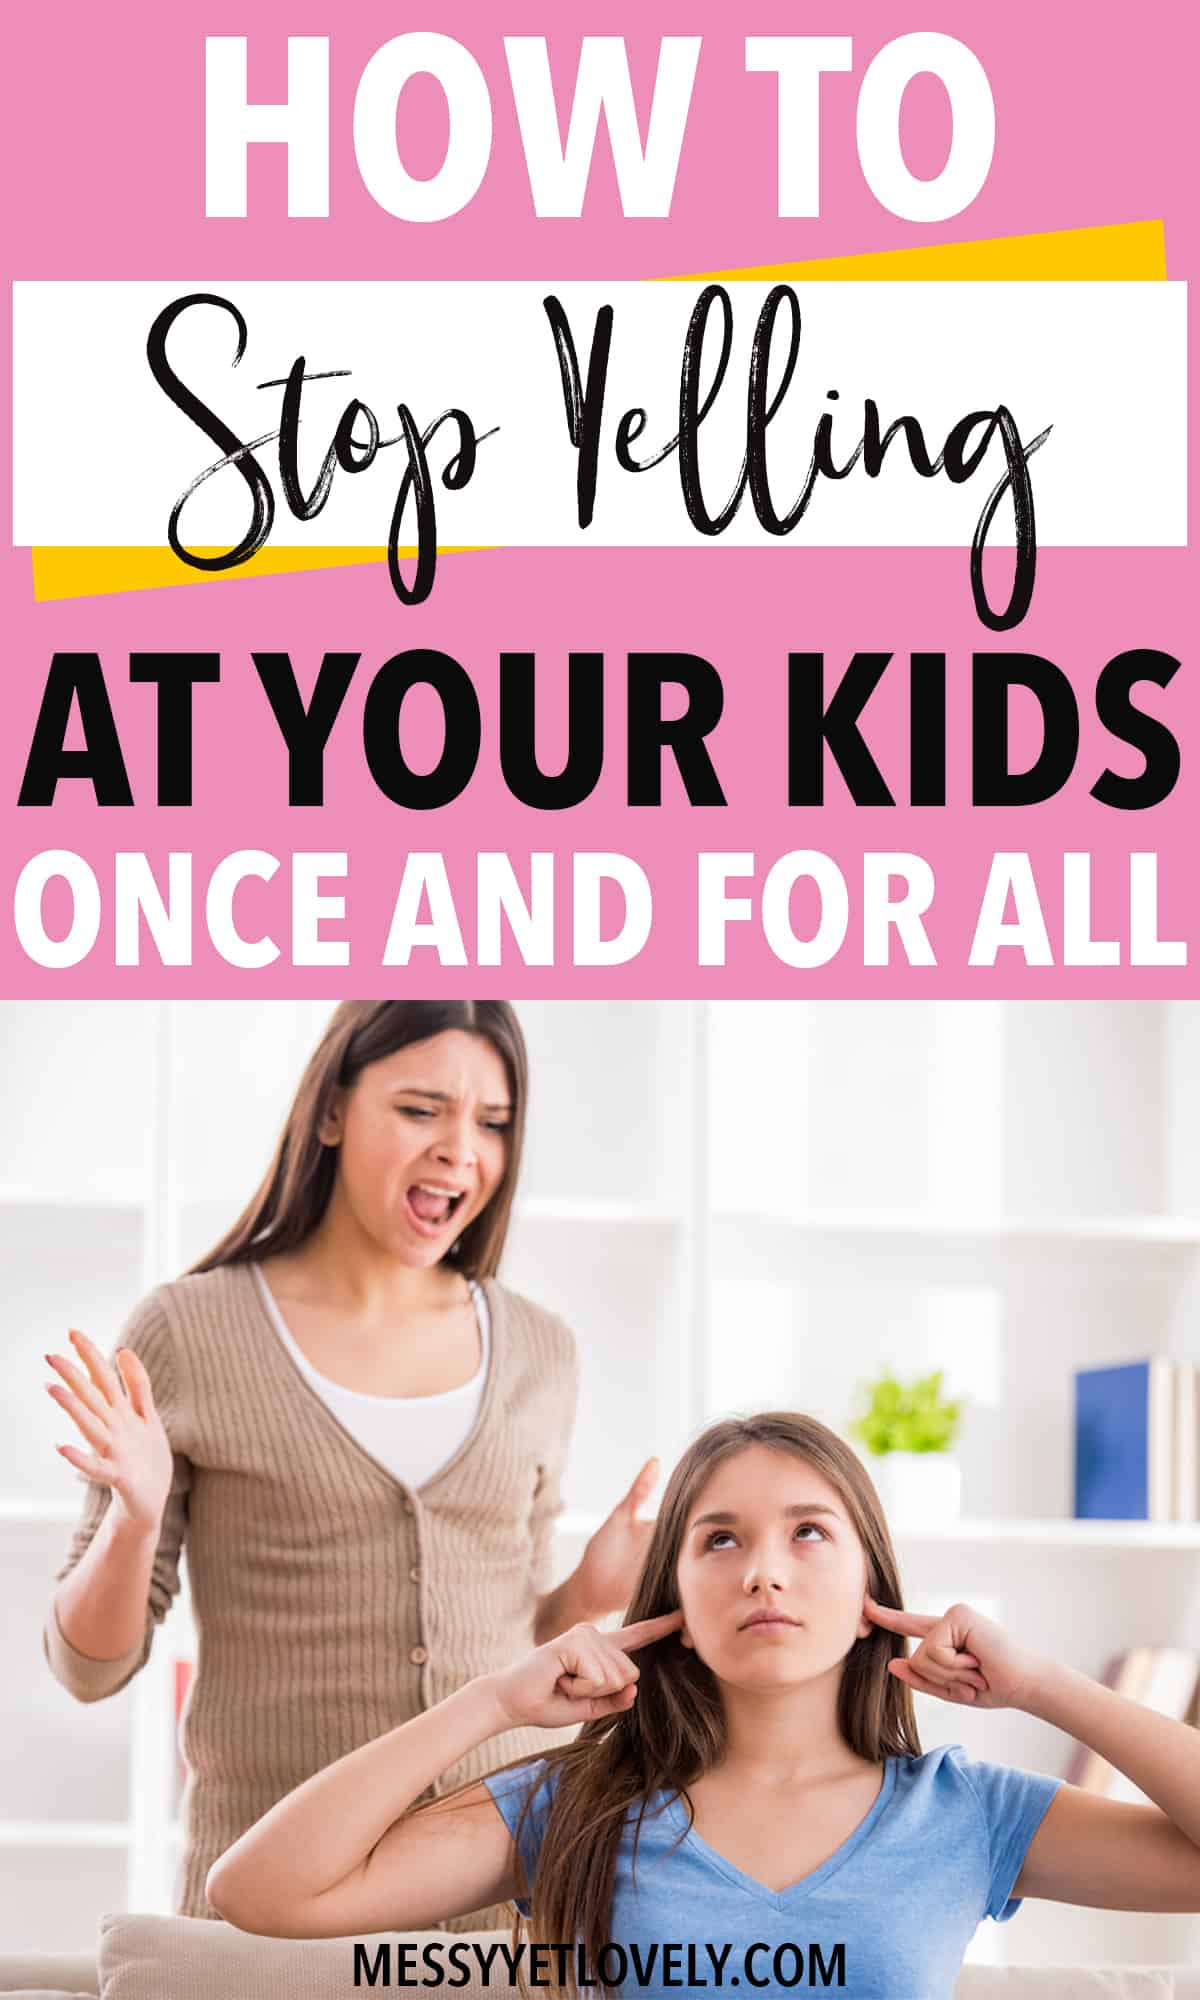 Do you feel guilty for yelling at your kids, but can't stop it? Here are 10 effective strategies to control anger and stop yelling at your kids to create a peaceful atmosphere at home.